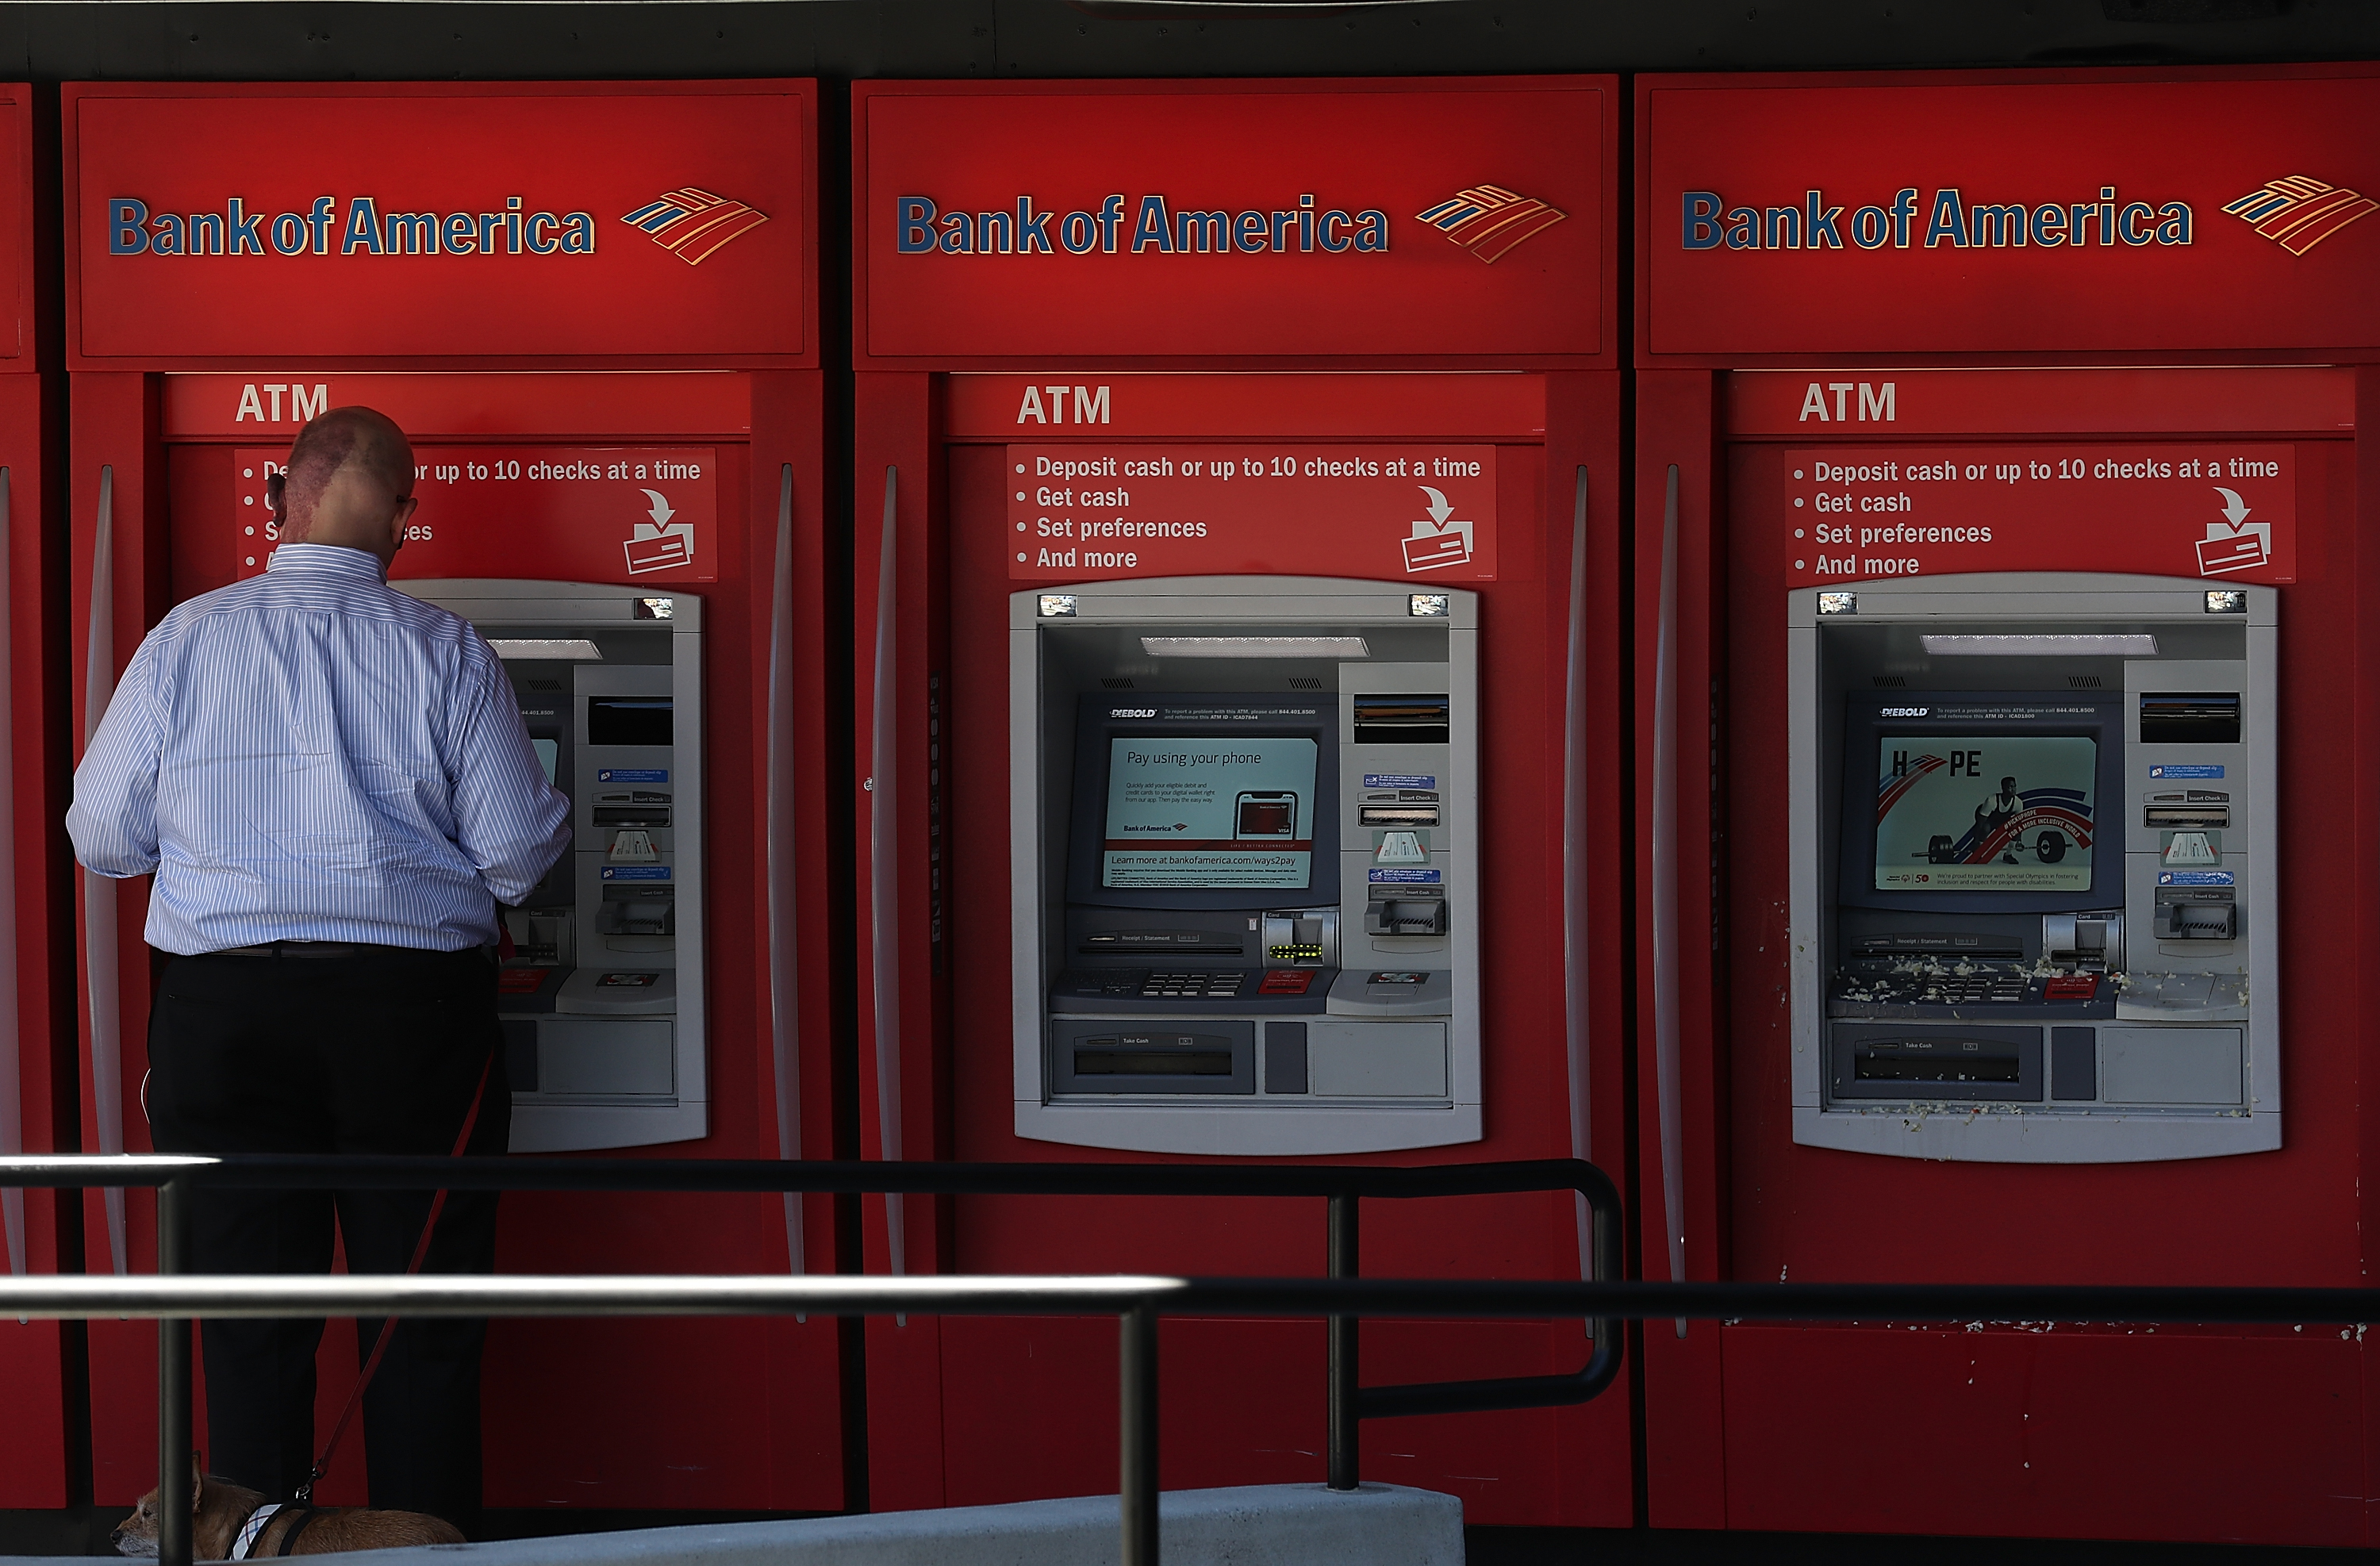 FBI warns of potential ATM bank heist that could steal millions globally